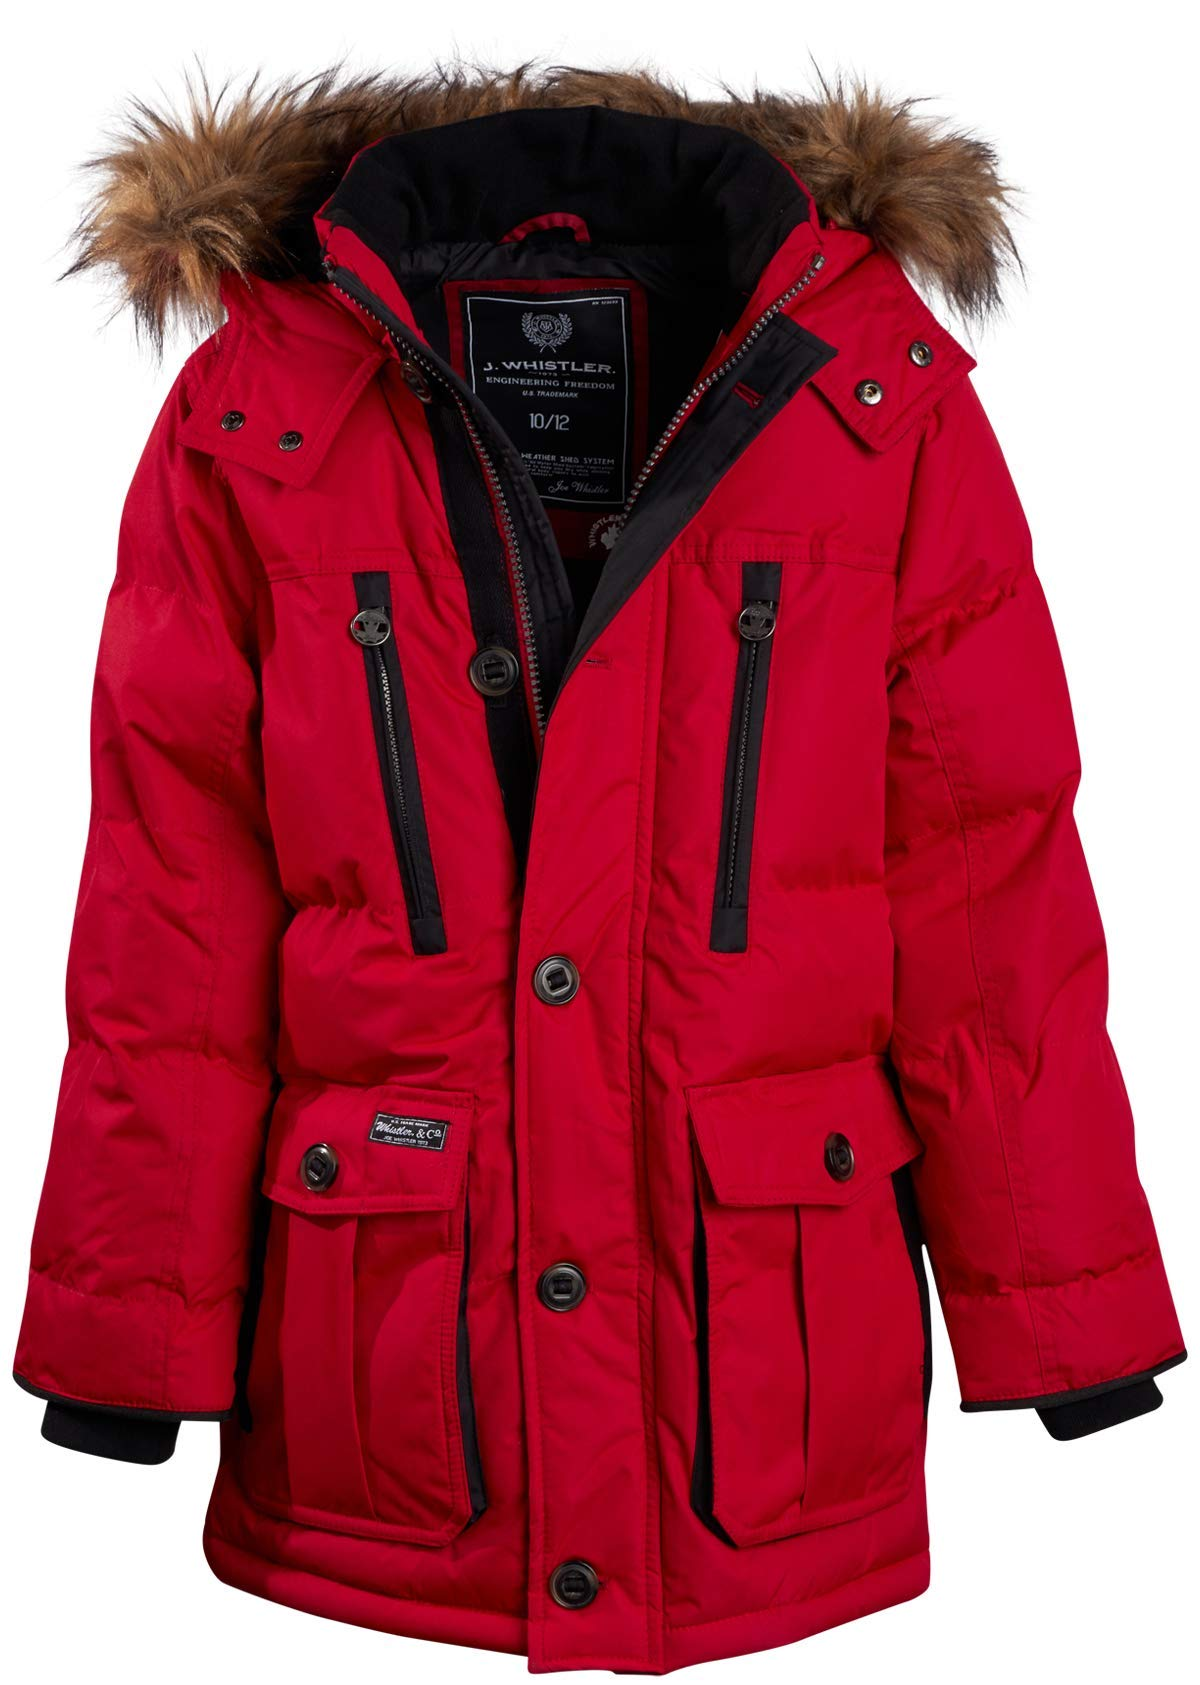 Whistler Boys Heavyweight Parka Puffer Jacket with Removable Hood J